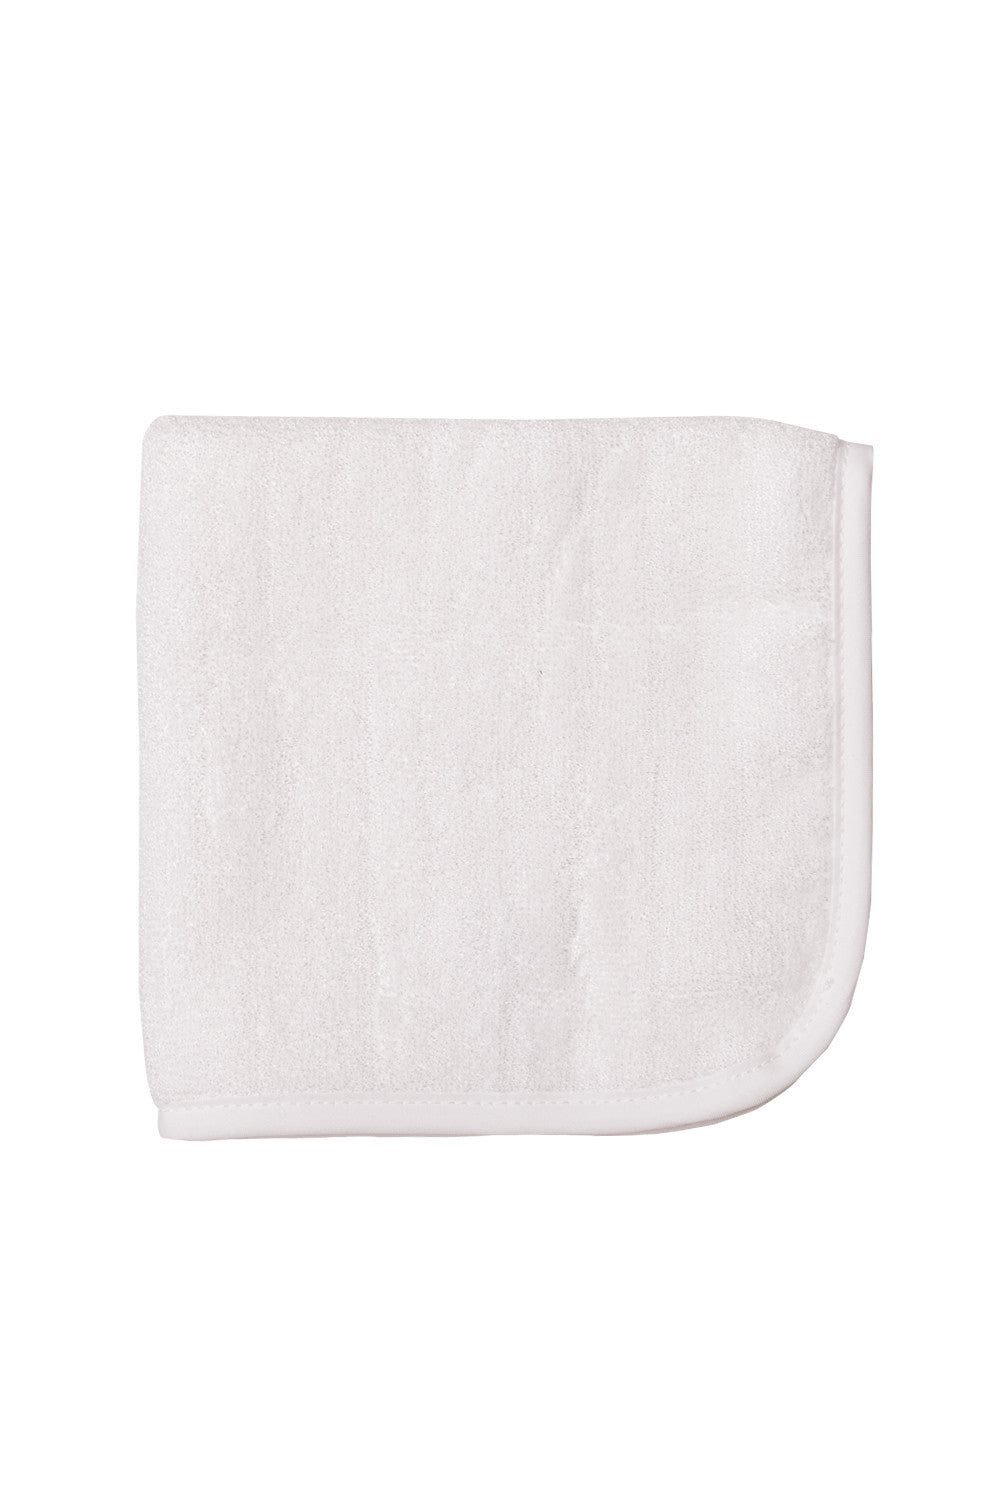 Plain white bamboo baby washcloths with trimmed edges